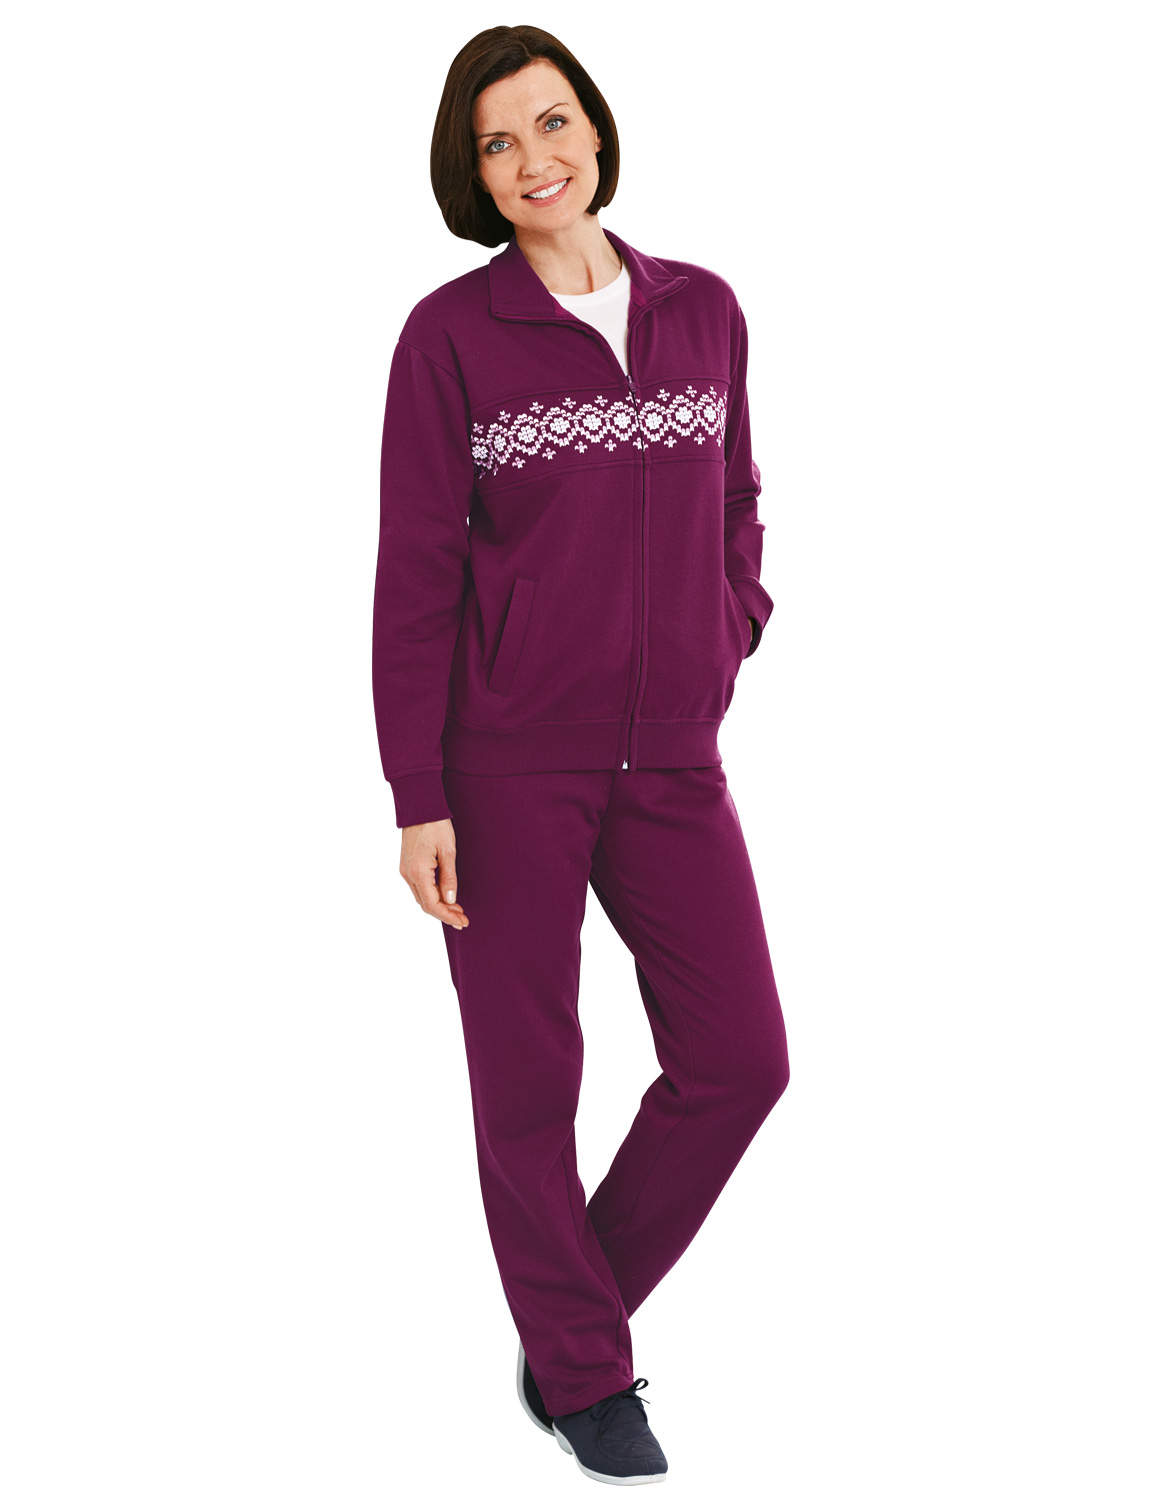 Find great deals on eBay for ladies track suits. Shop with confidence.